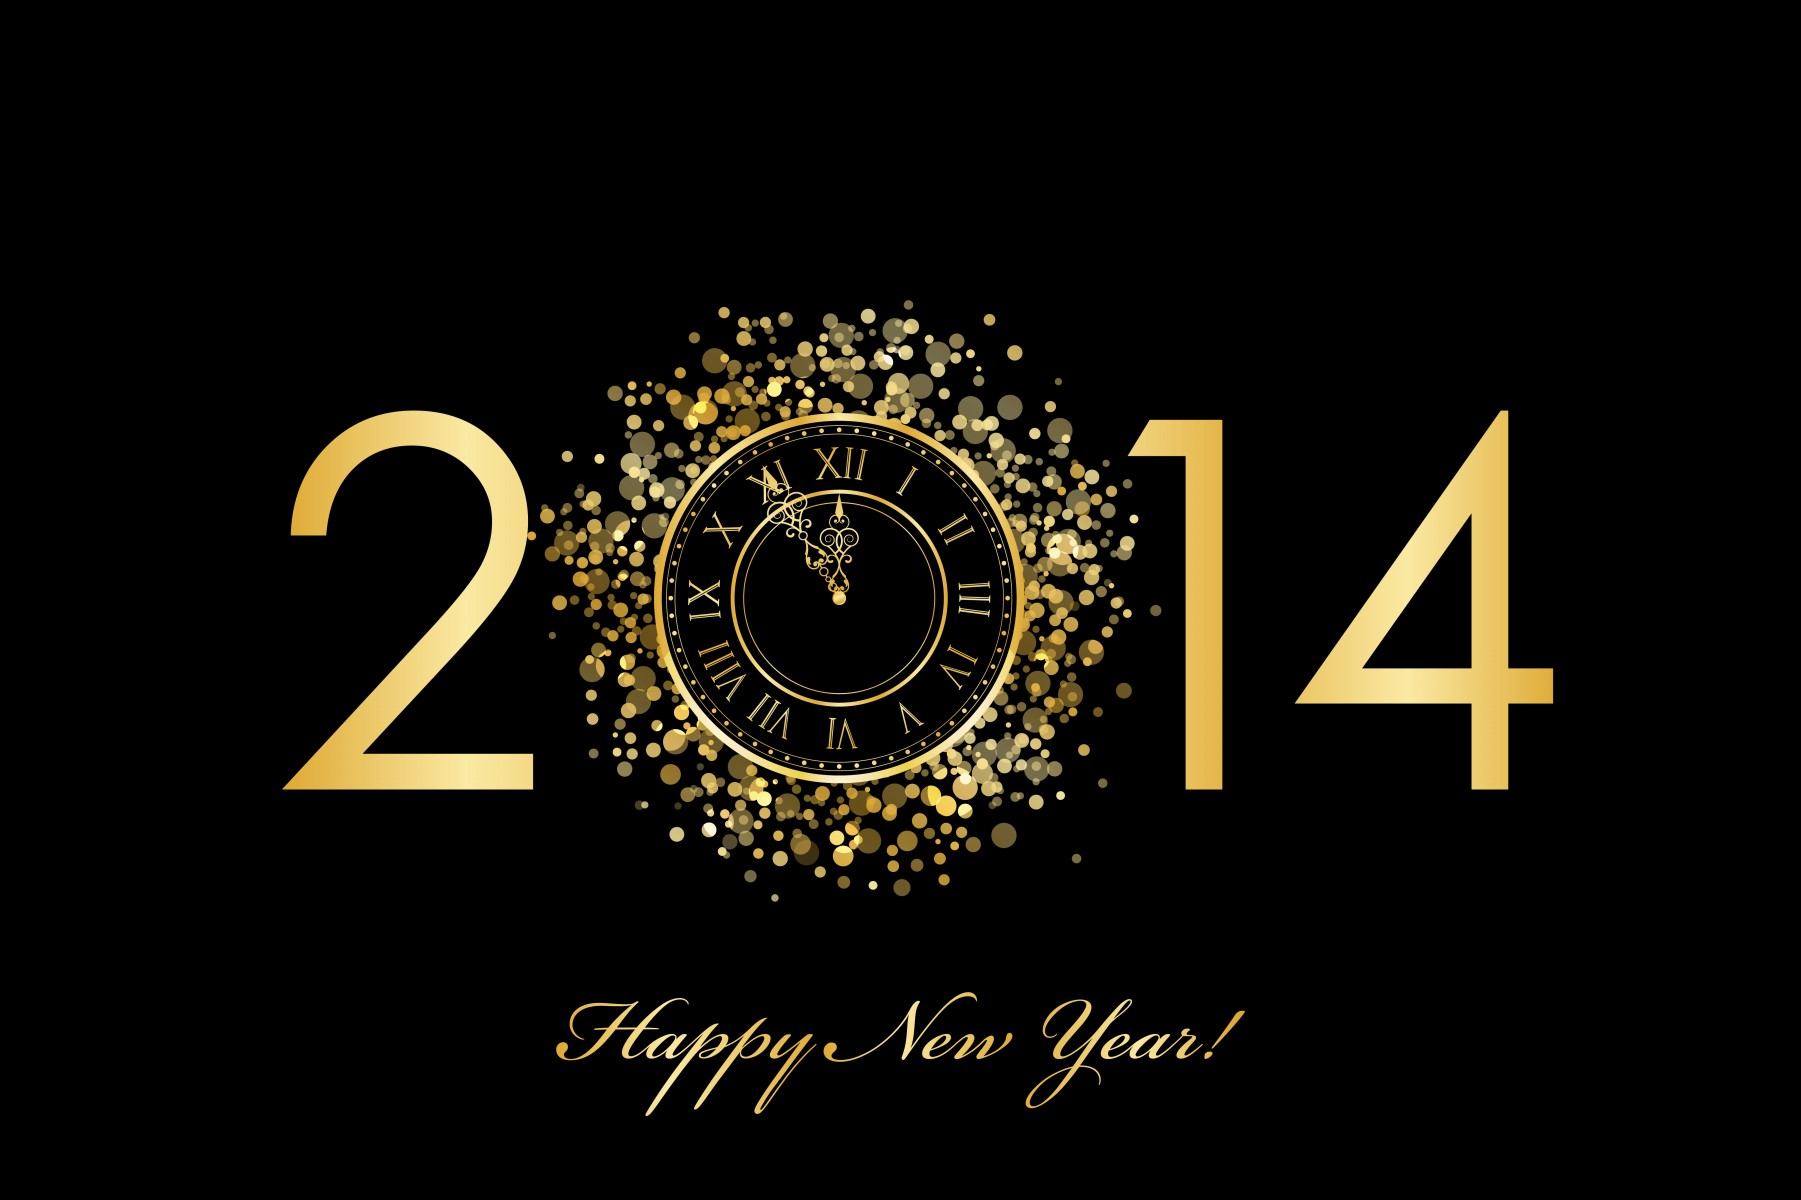 30 Outstanding New Year Wallpaper For 2015   ImpFashion   All News 1801x1200